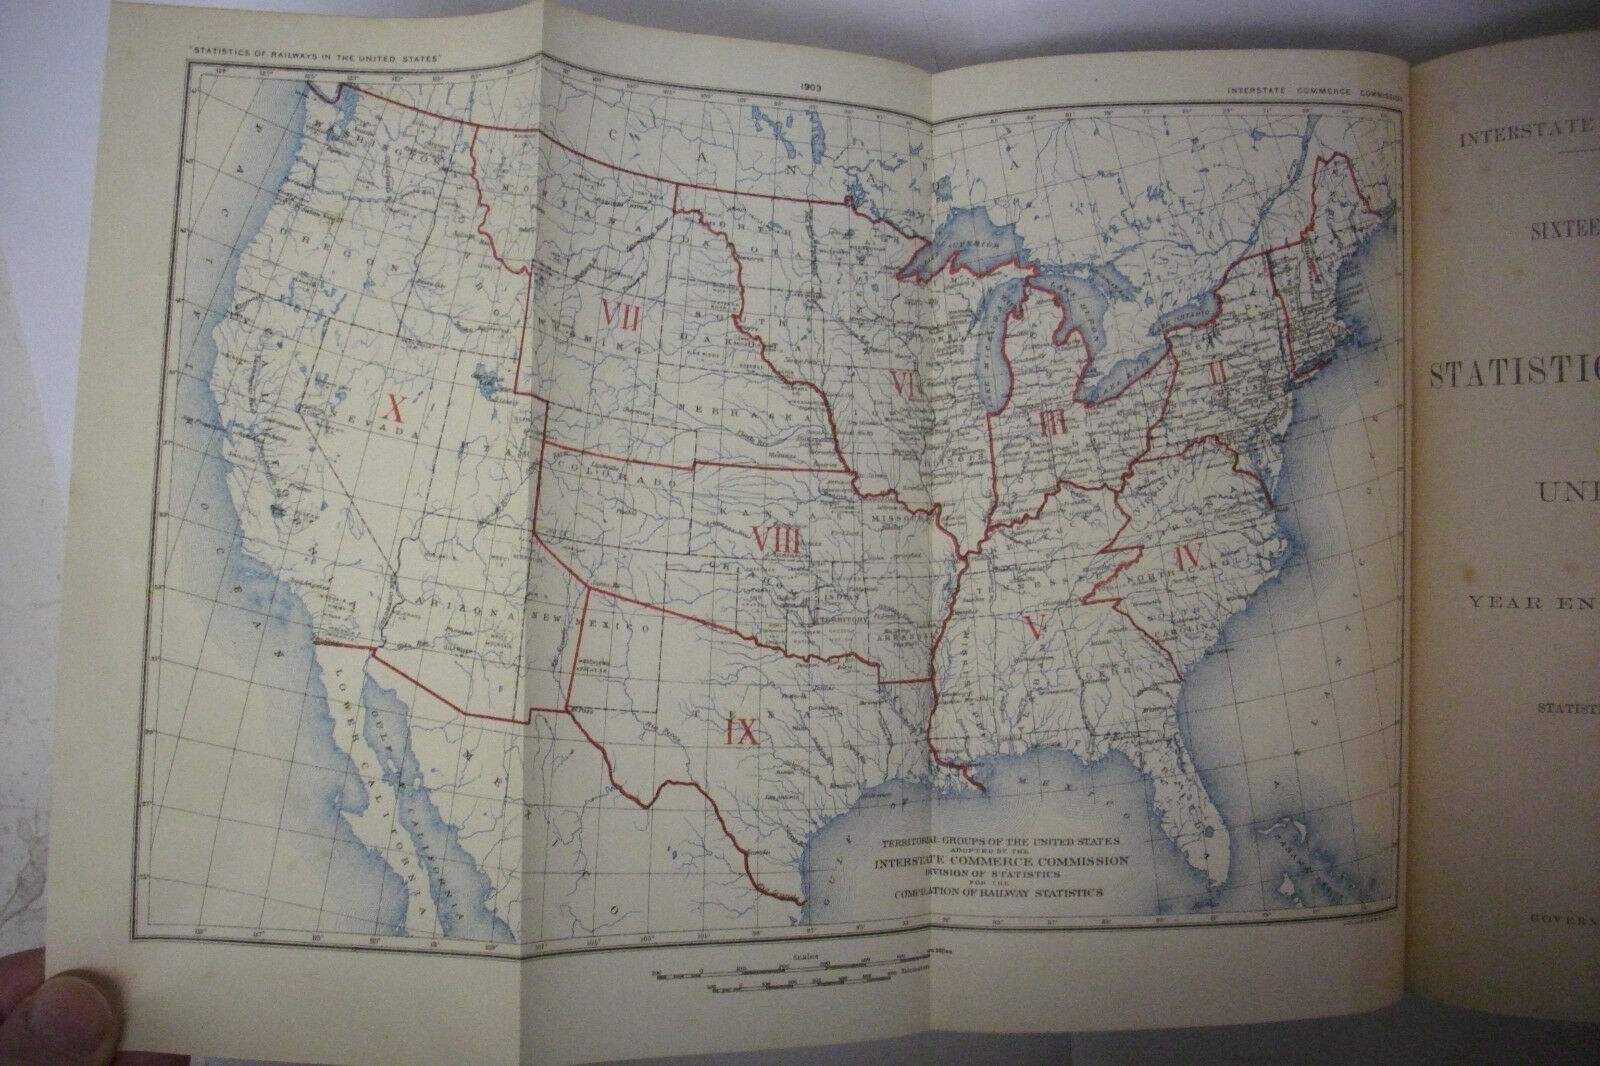 1903 ANNUAL REPORT ON THE RAILWAYS IN THE US RailroadTrainsw